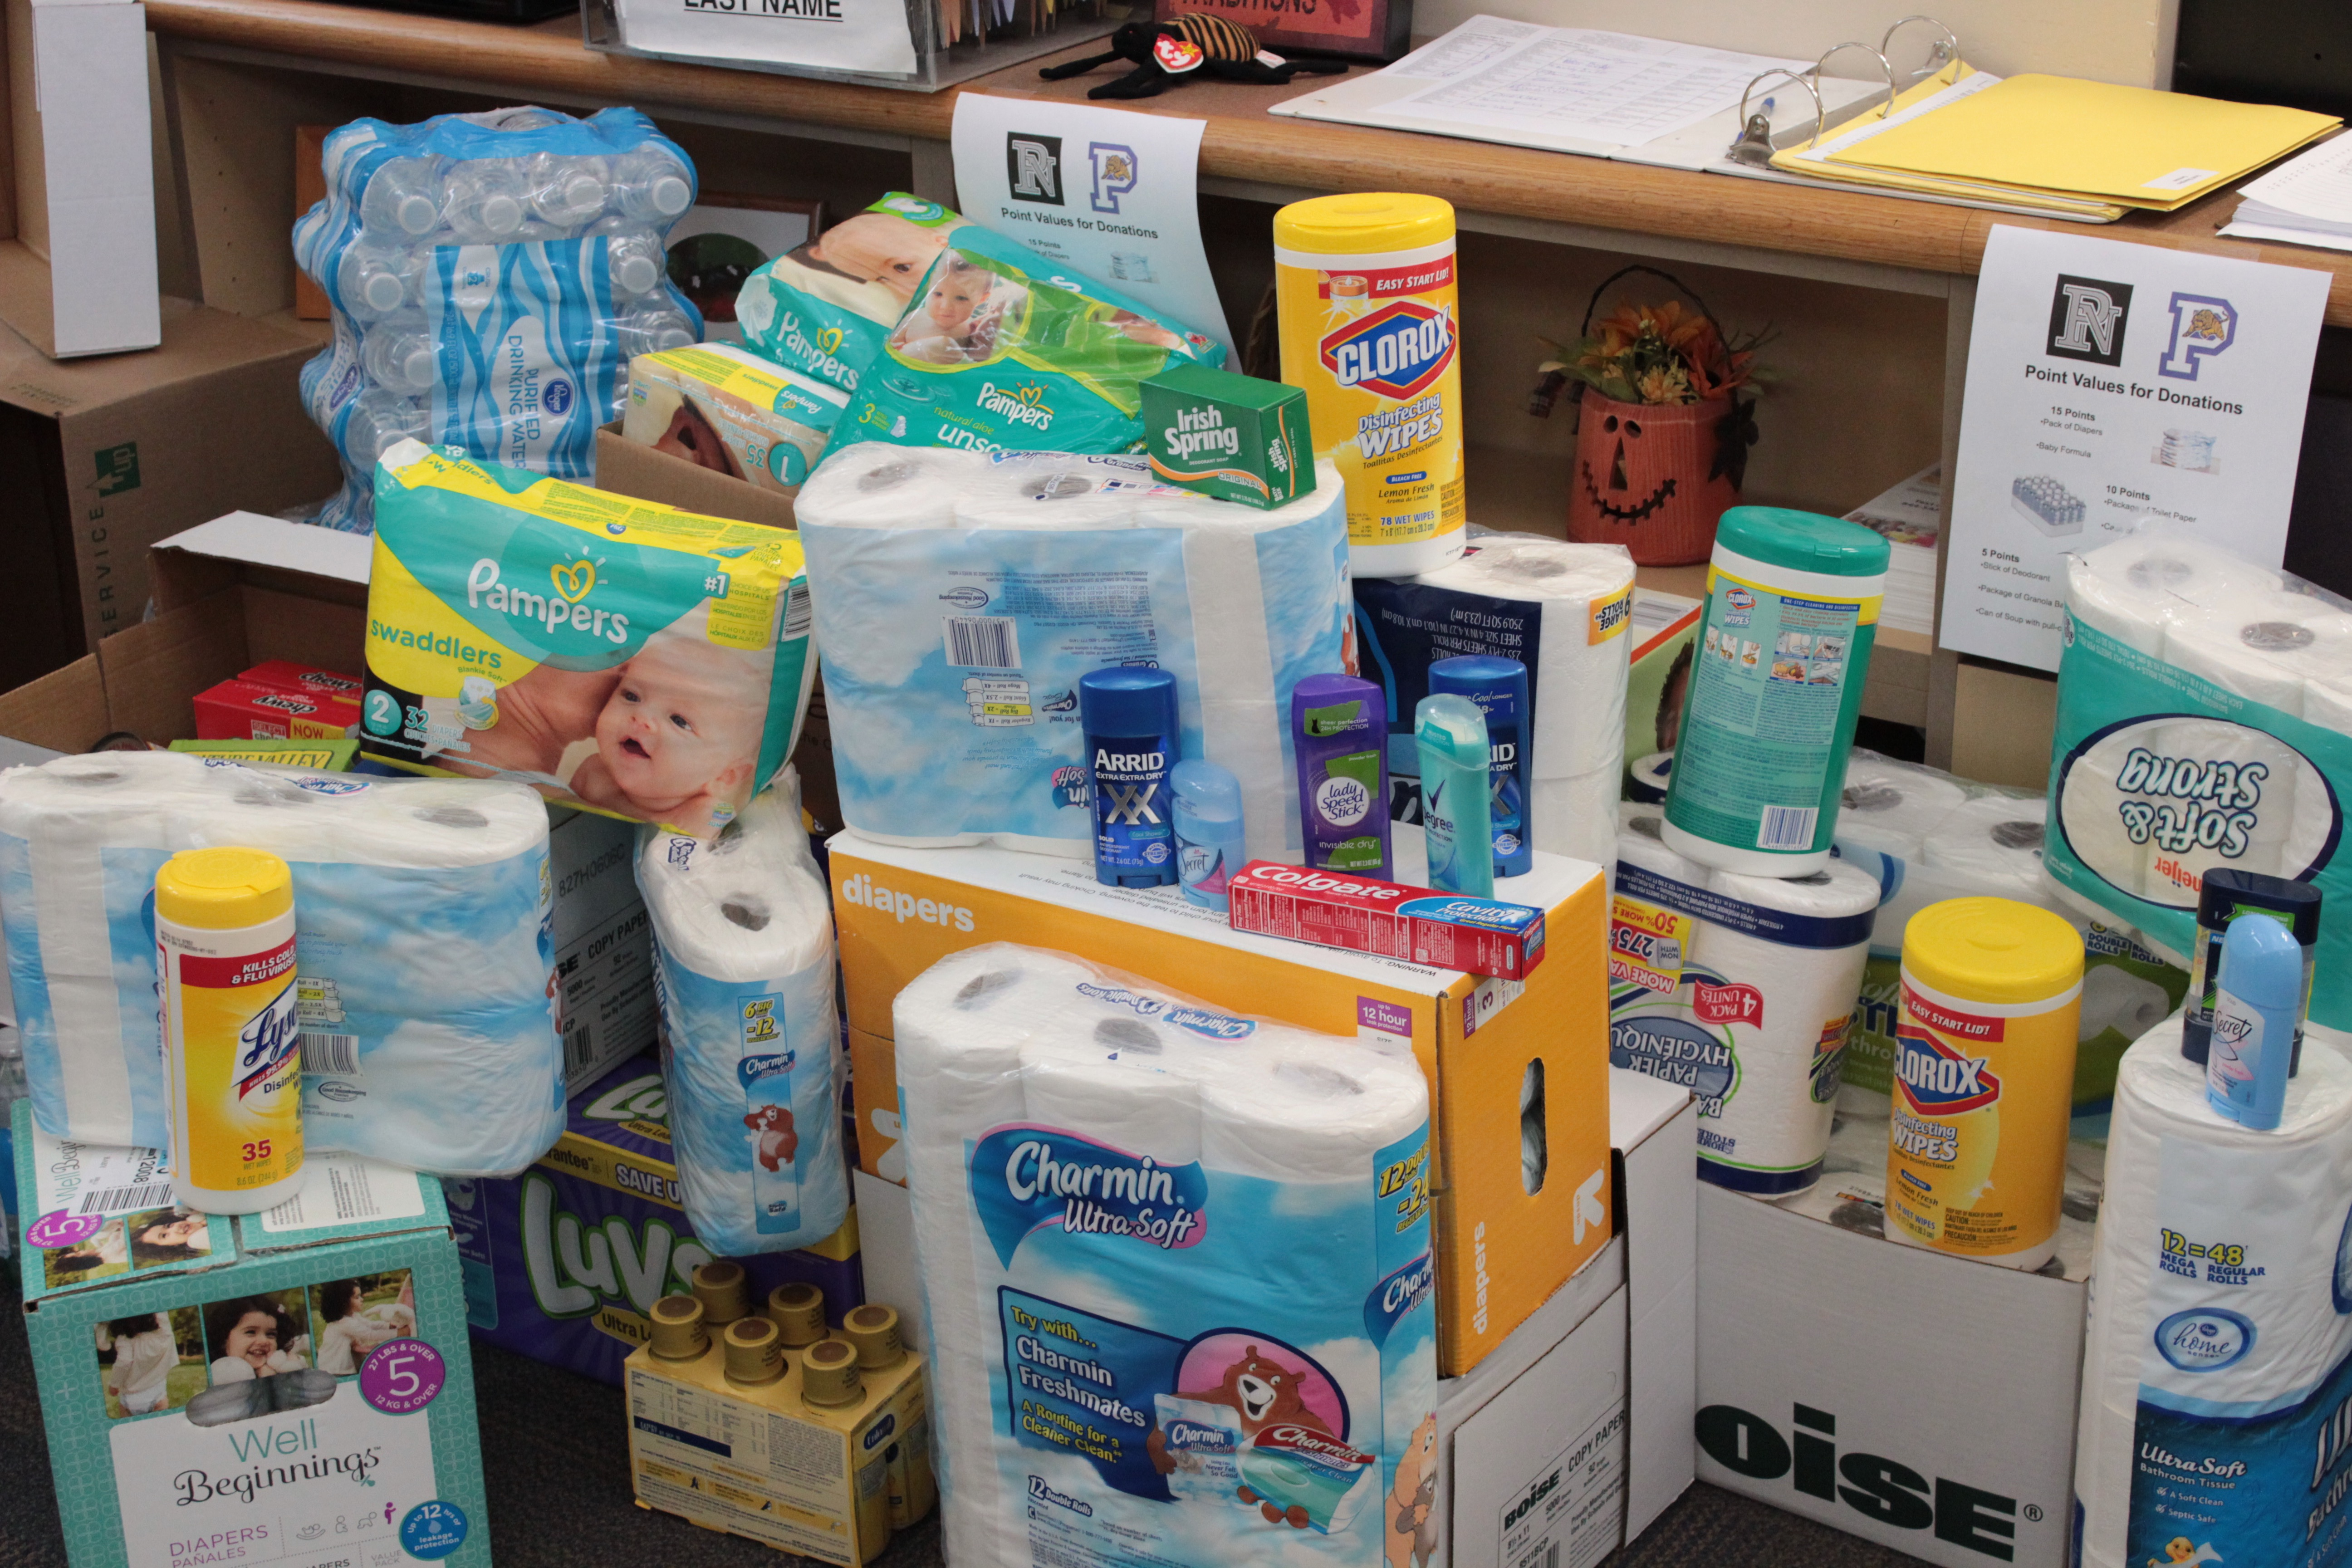 Photo showing the donated items, toilet paper, water, soap